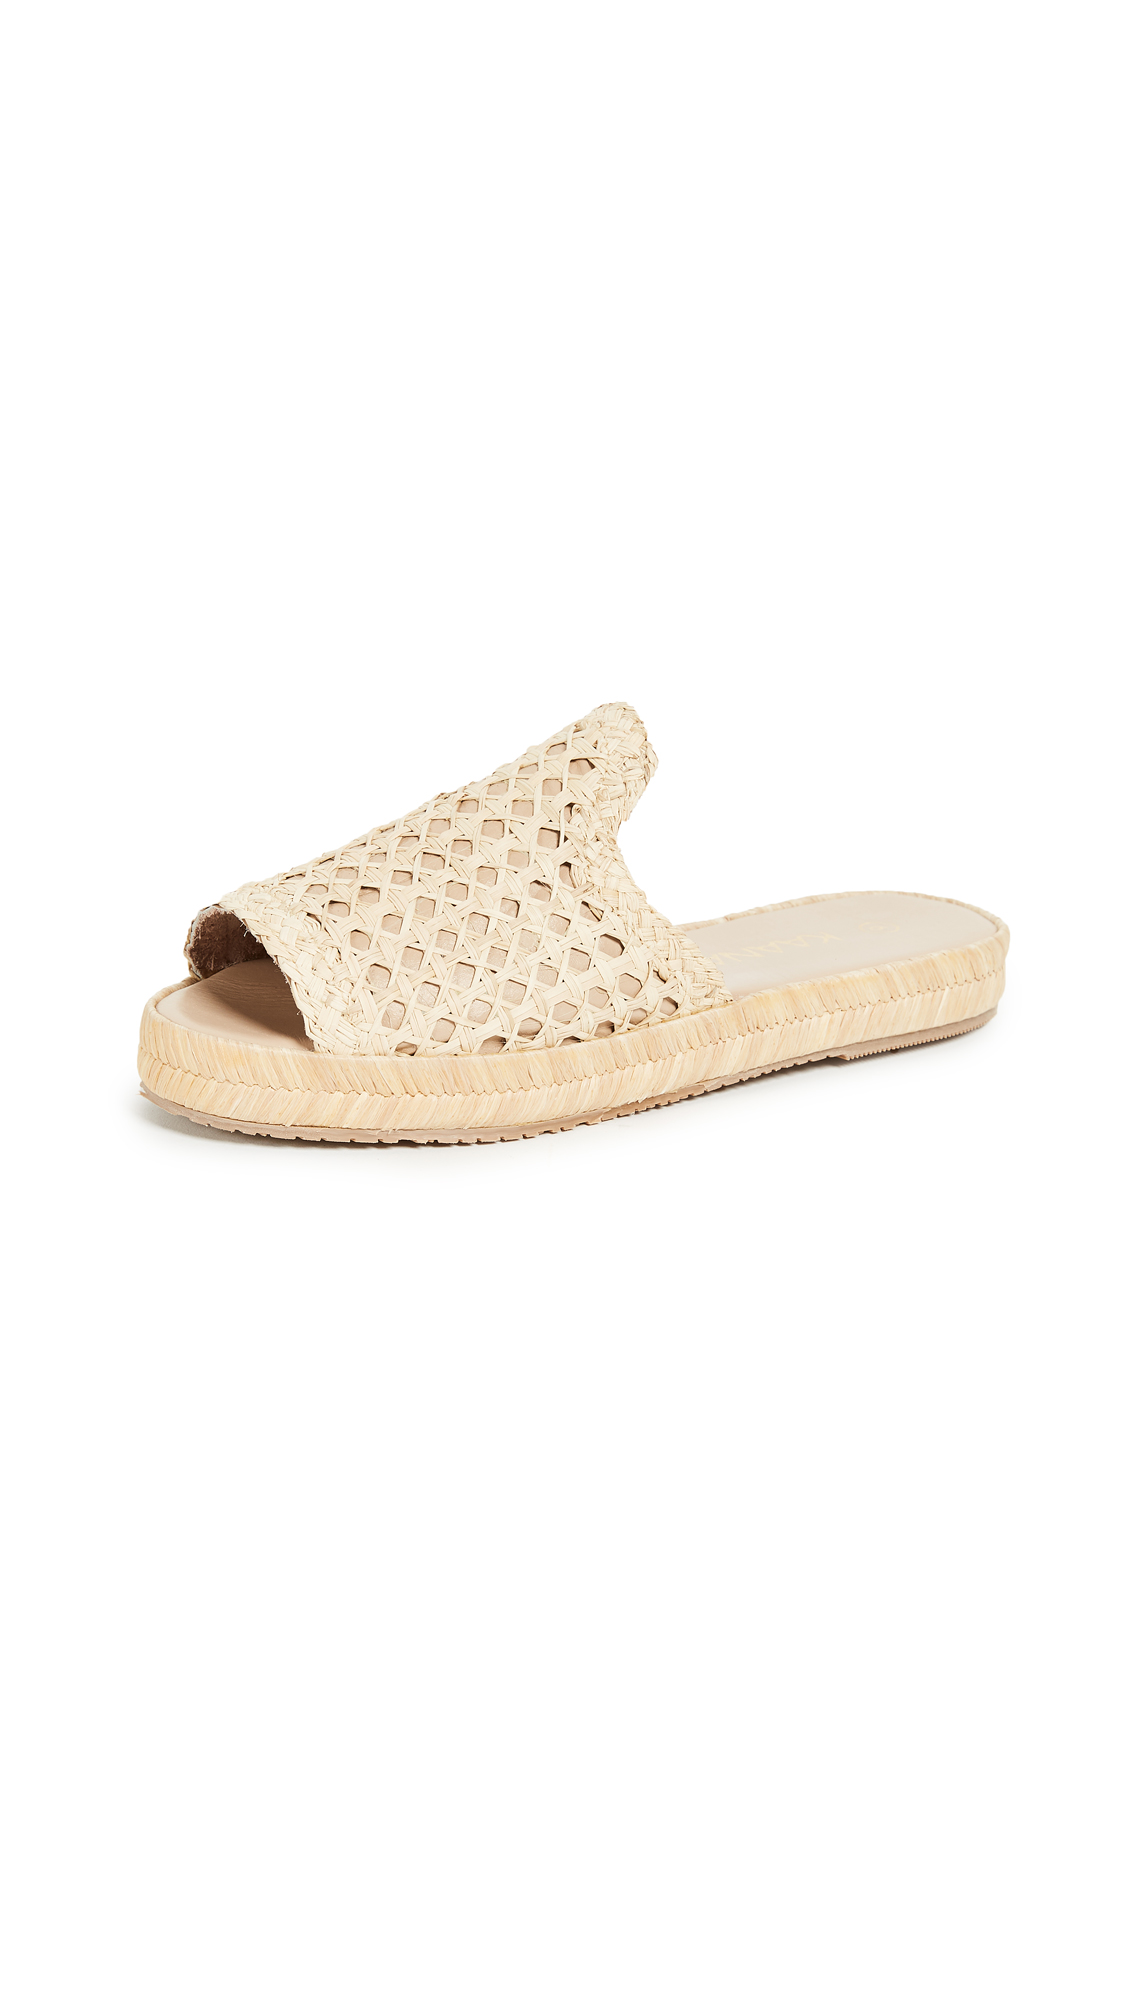 KAANAS Martinique Woven Pool Slides - Natural